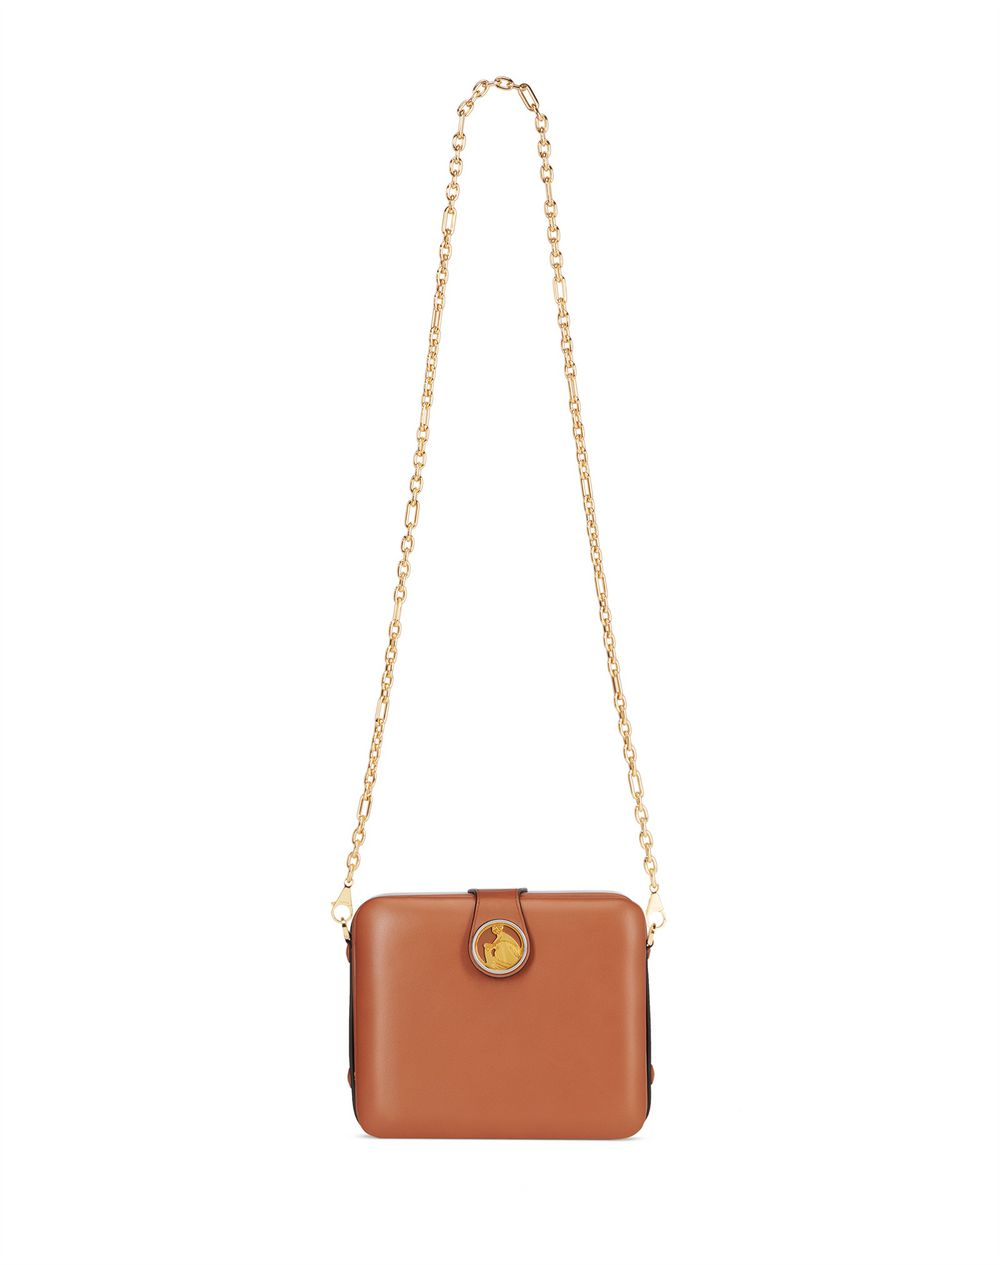 EARTH-COLORED BENTO BAG - Lanvin